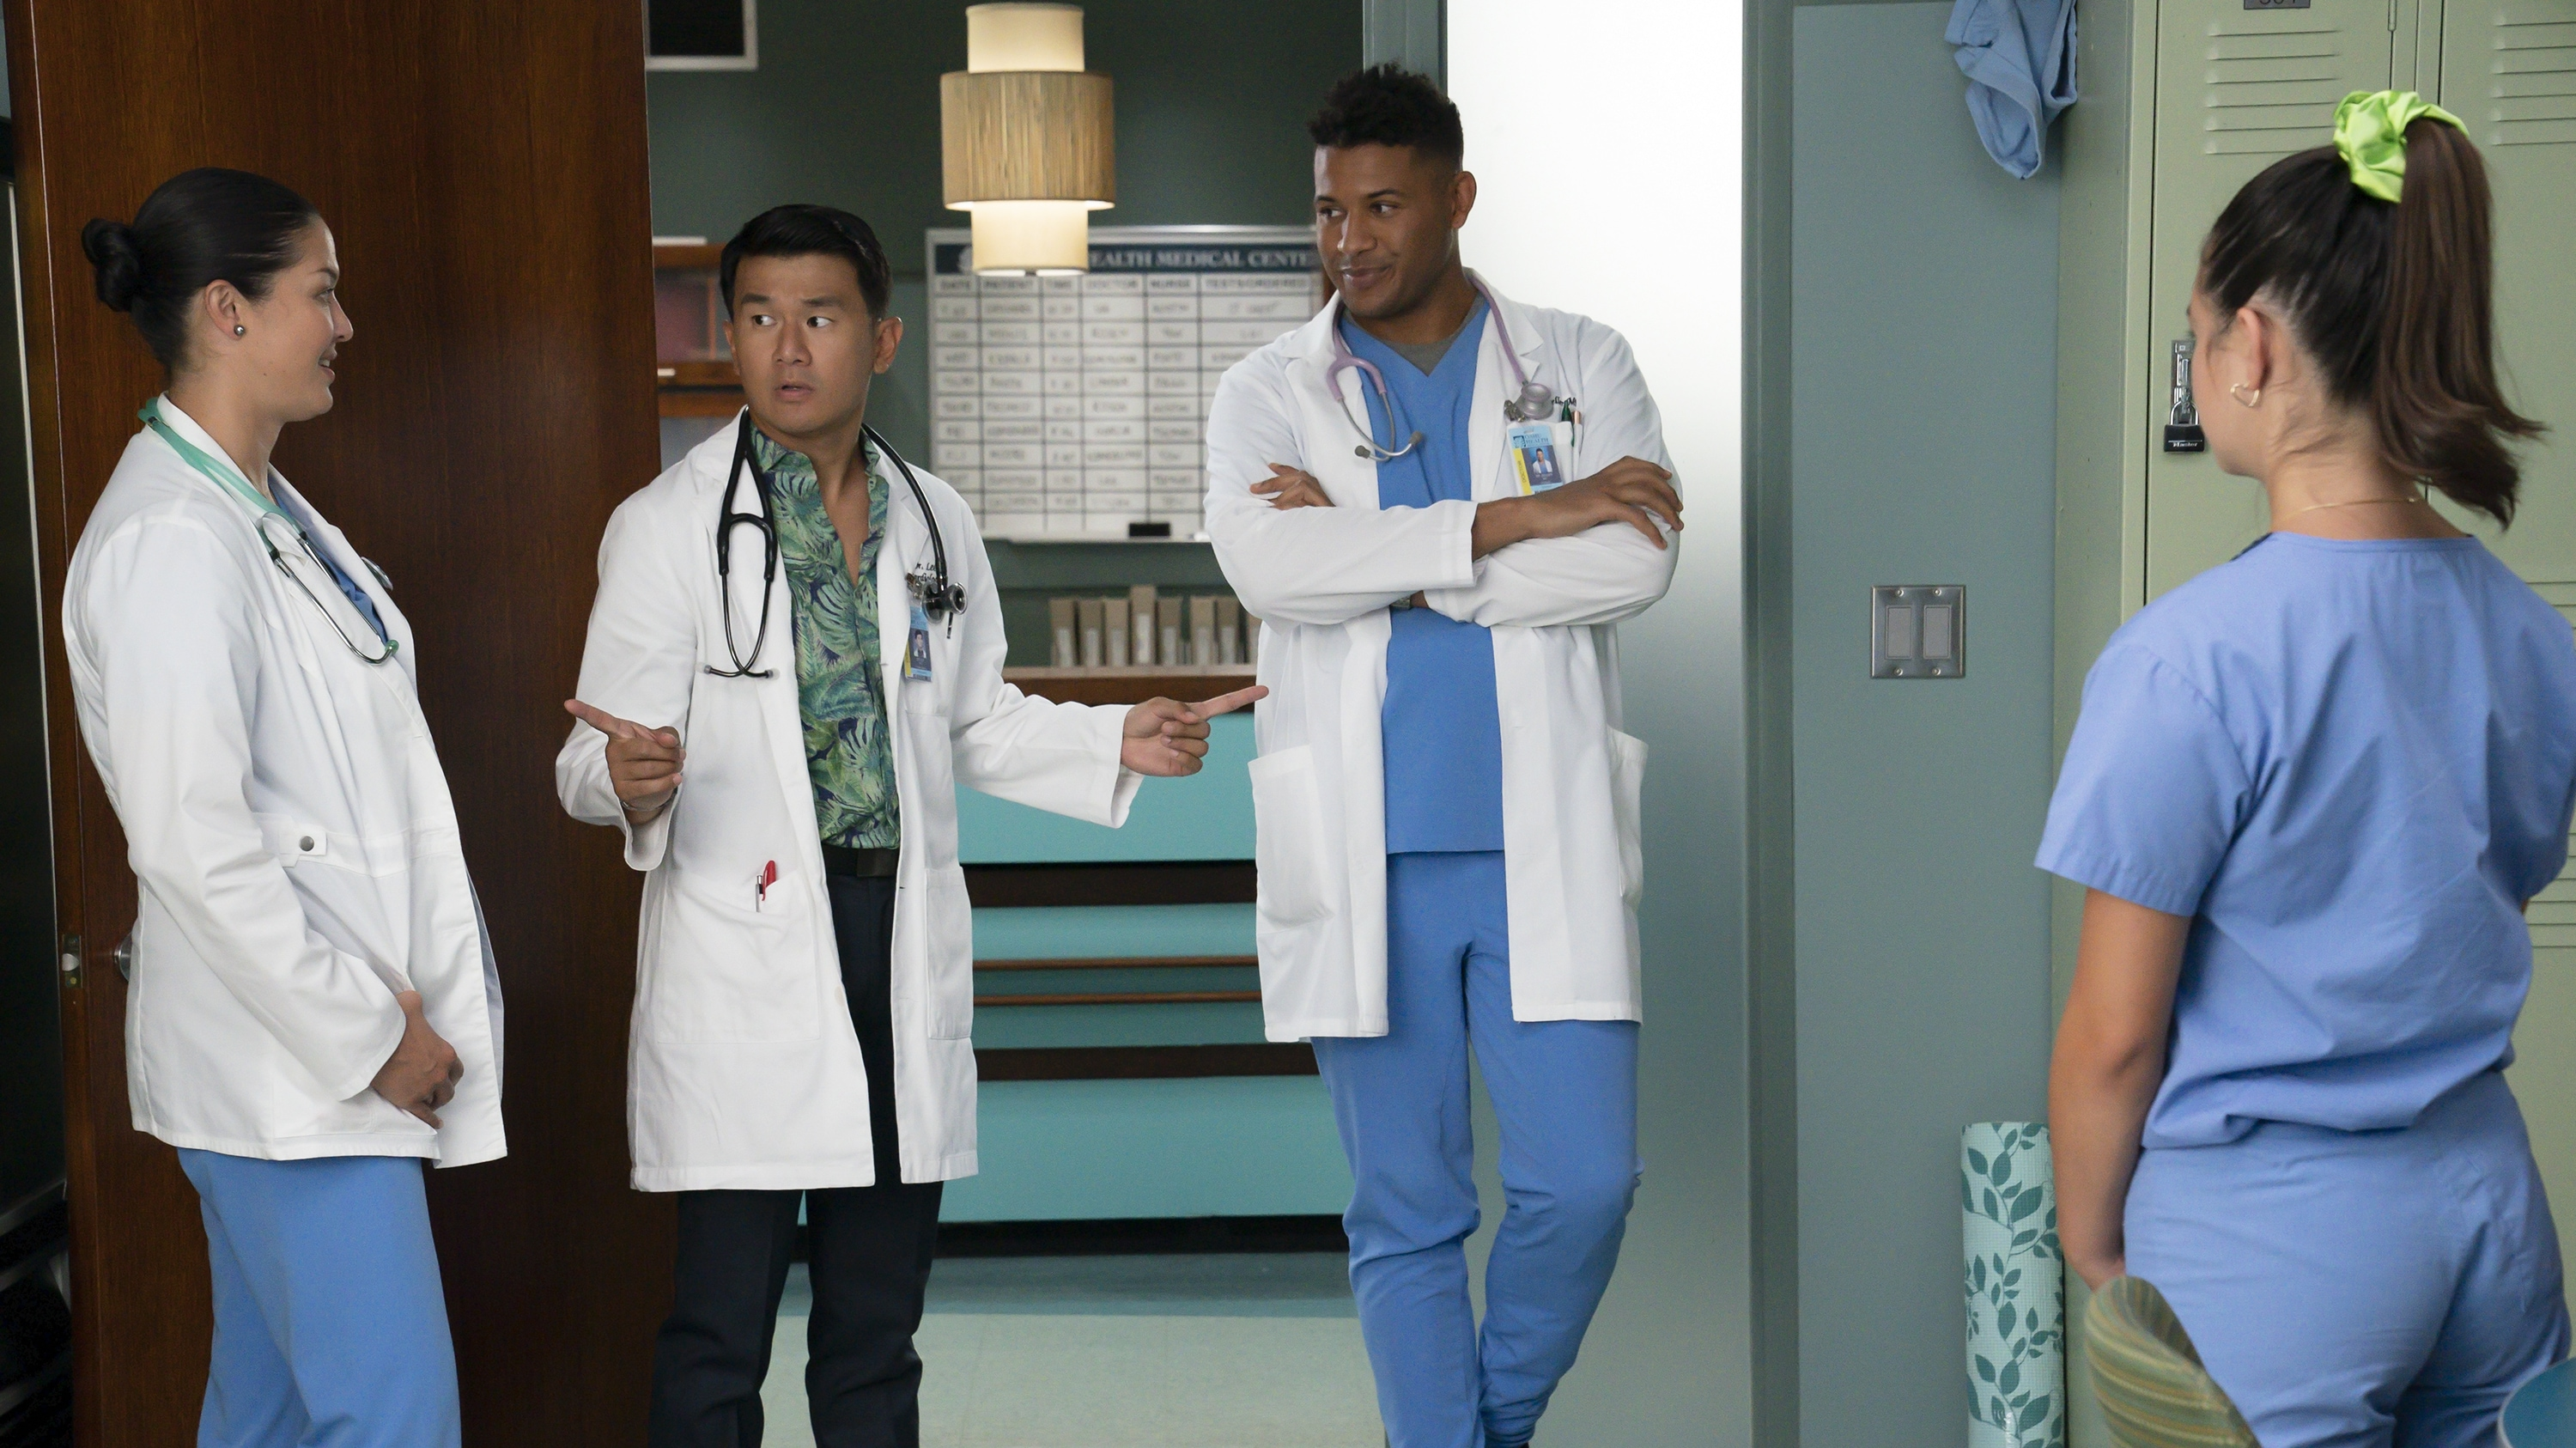 """DOOGIE KAMEALOHA, M.D. - """"Career Babes"""" - Lahela tries to fit in by joining the high school dance team; Kai's new passion worries his parents. (Disney/Karen Neal) MAPUANA MAKIA, RONNY CHIENG, JEFFREY BOWYER-CHAPMAN"""